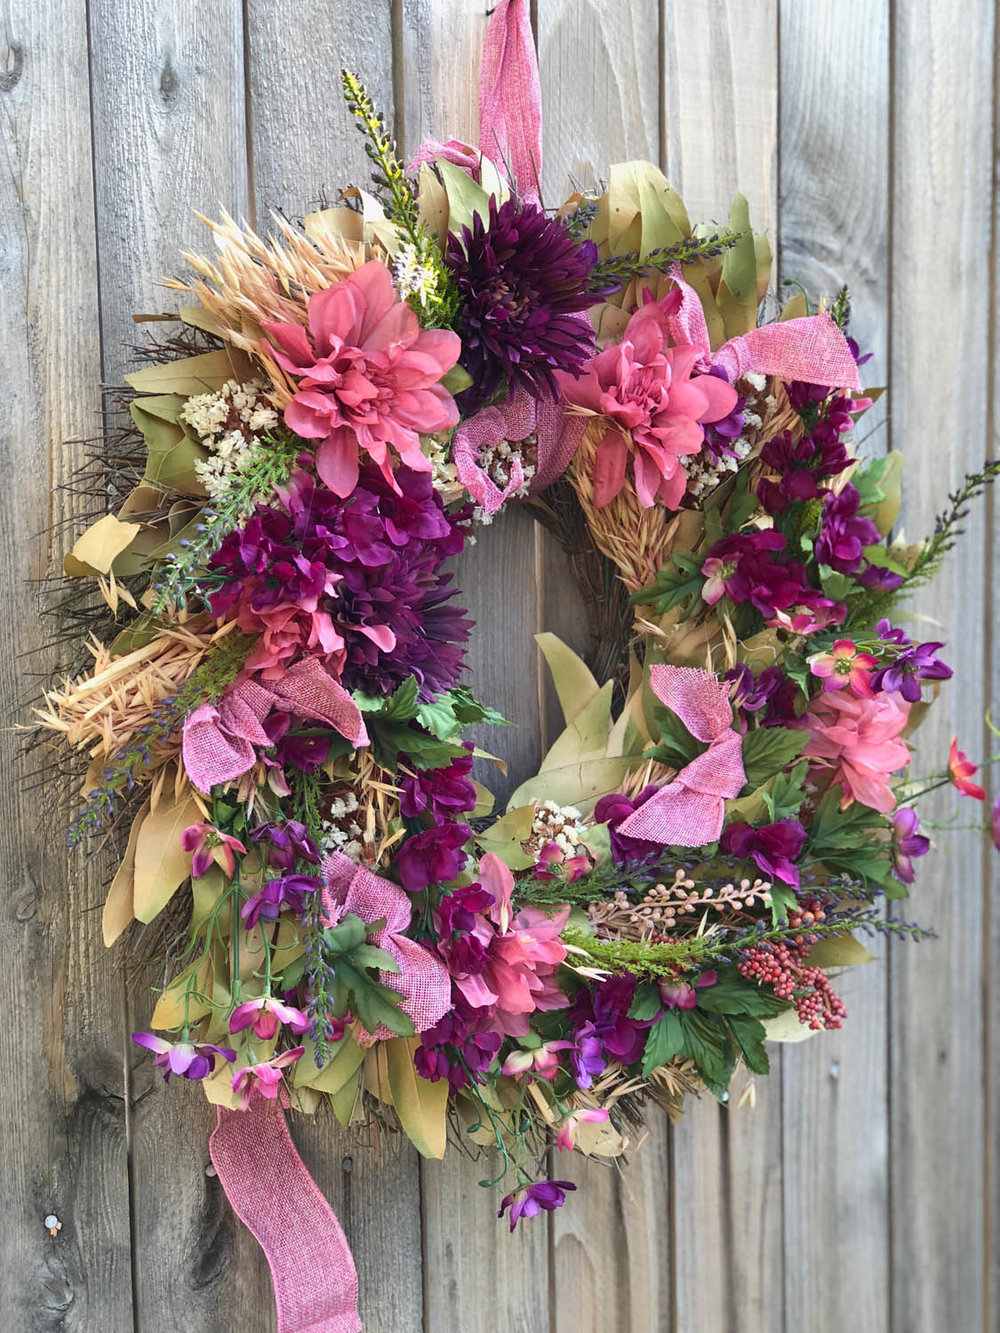 refreshed spring wreath hanging on exterior wood fence